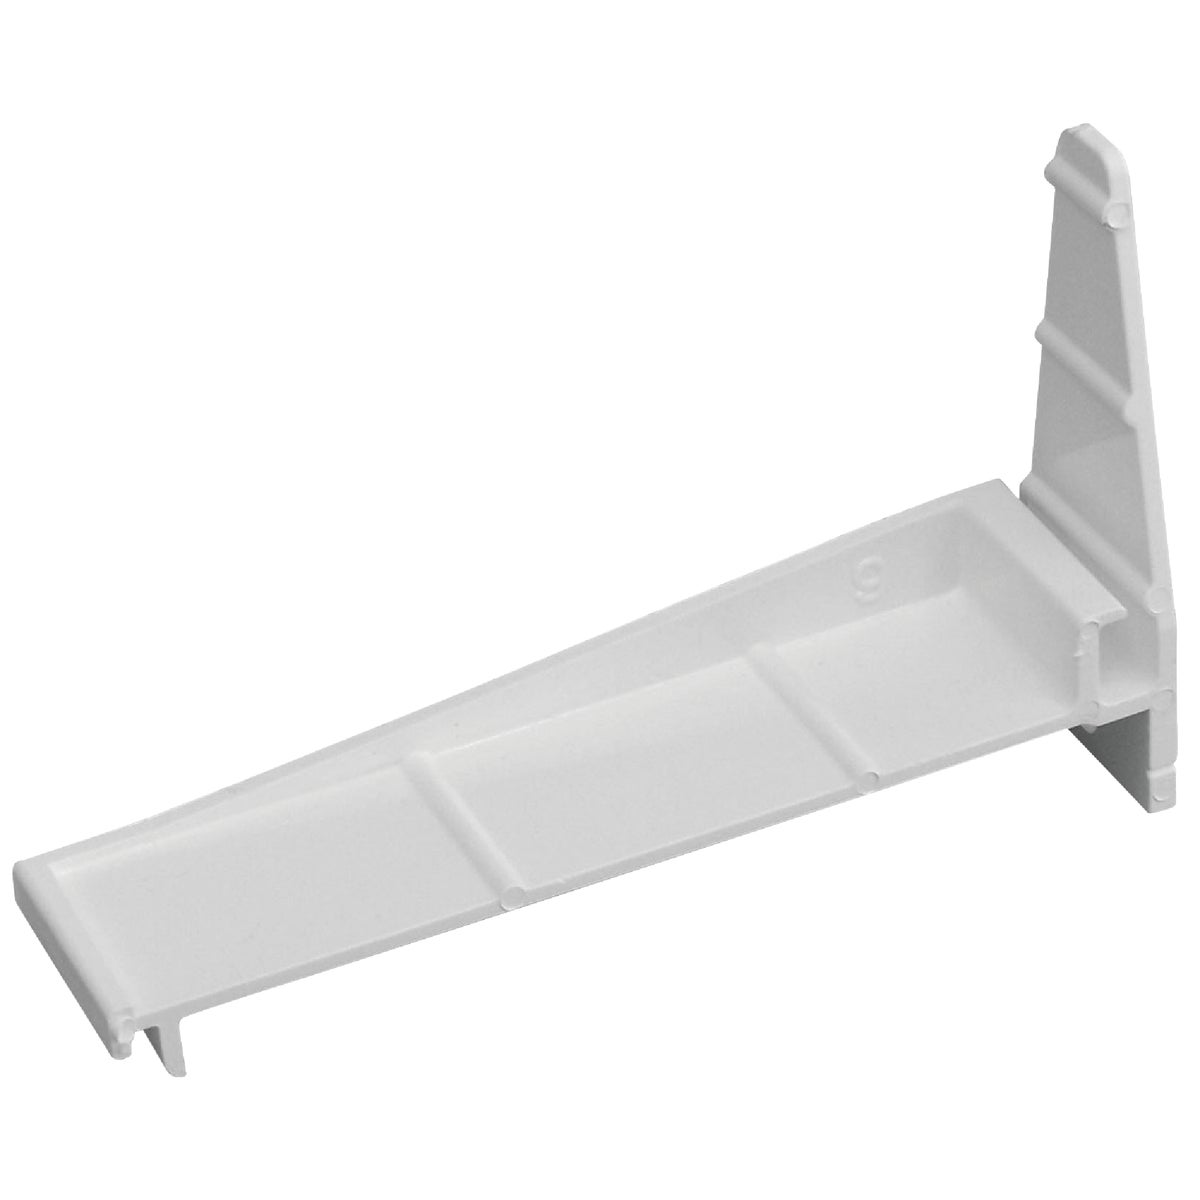 WHT GUTTER BRACKET - AW106 by Genova Products